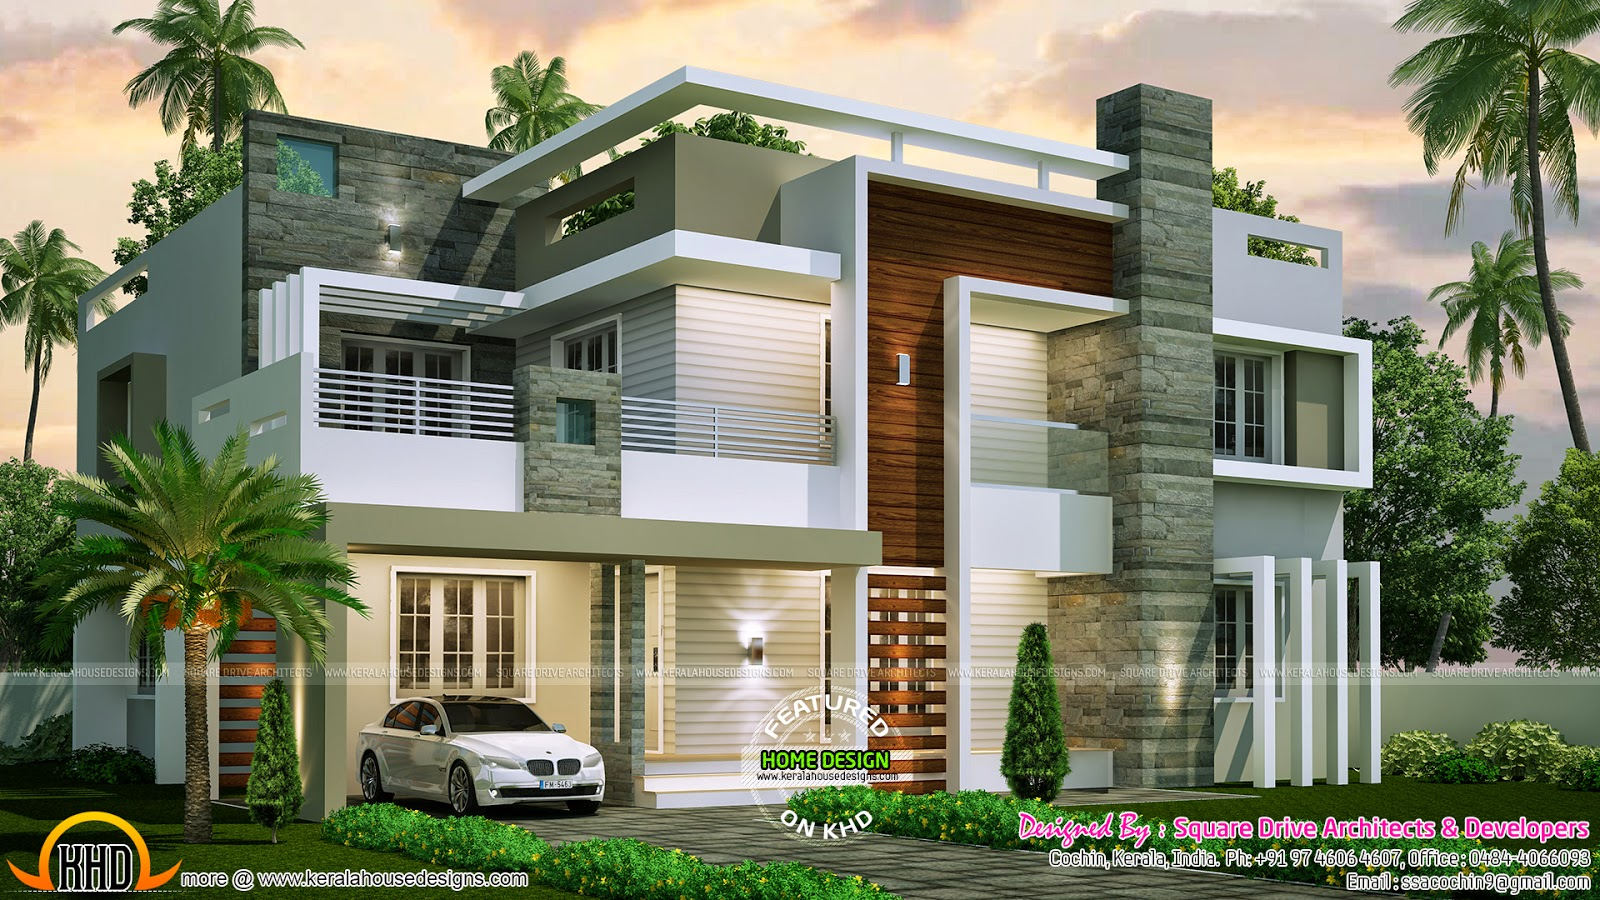 4 bedroom contemporary home design kerala home design and floor plans - Contemporary home ...